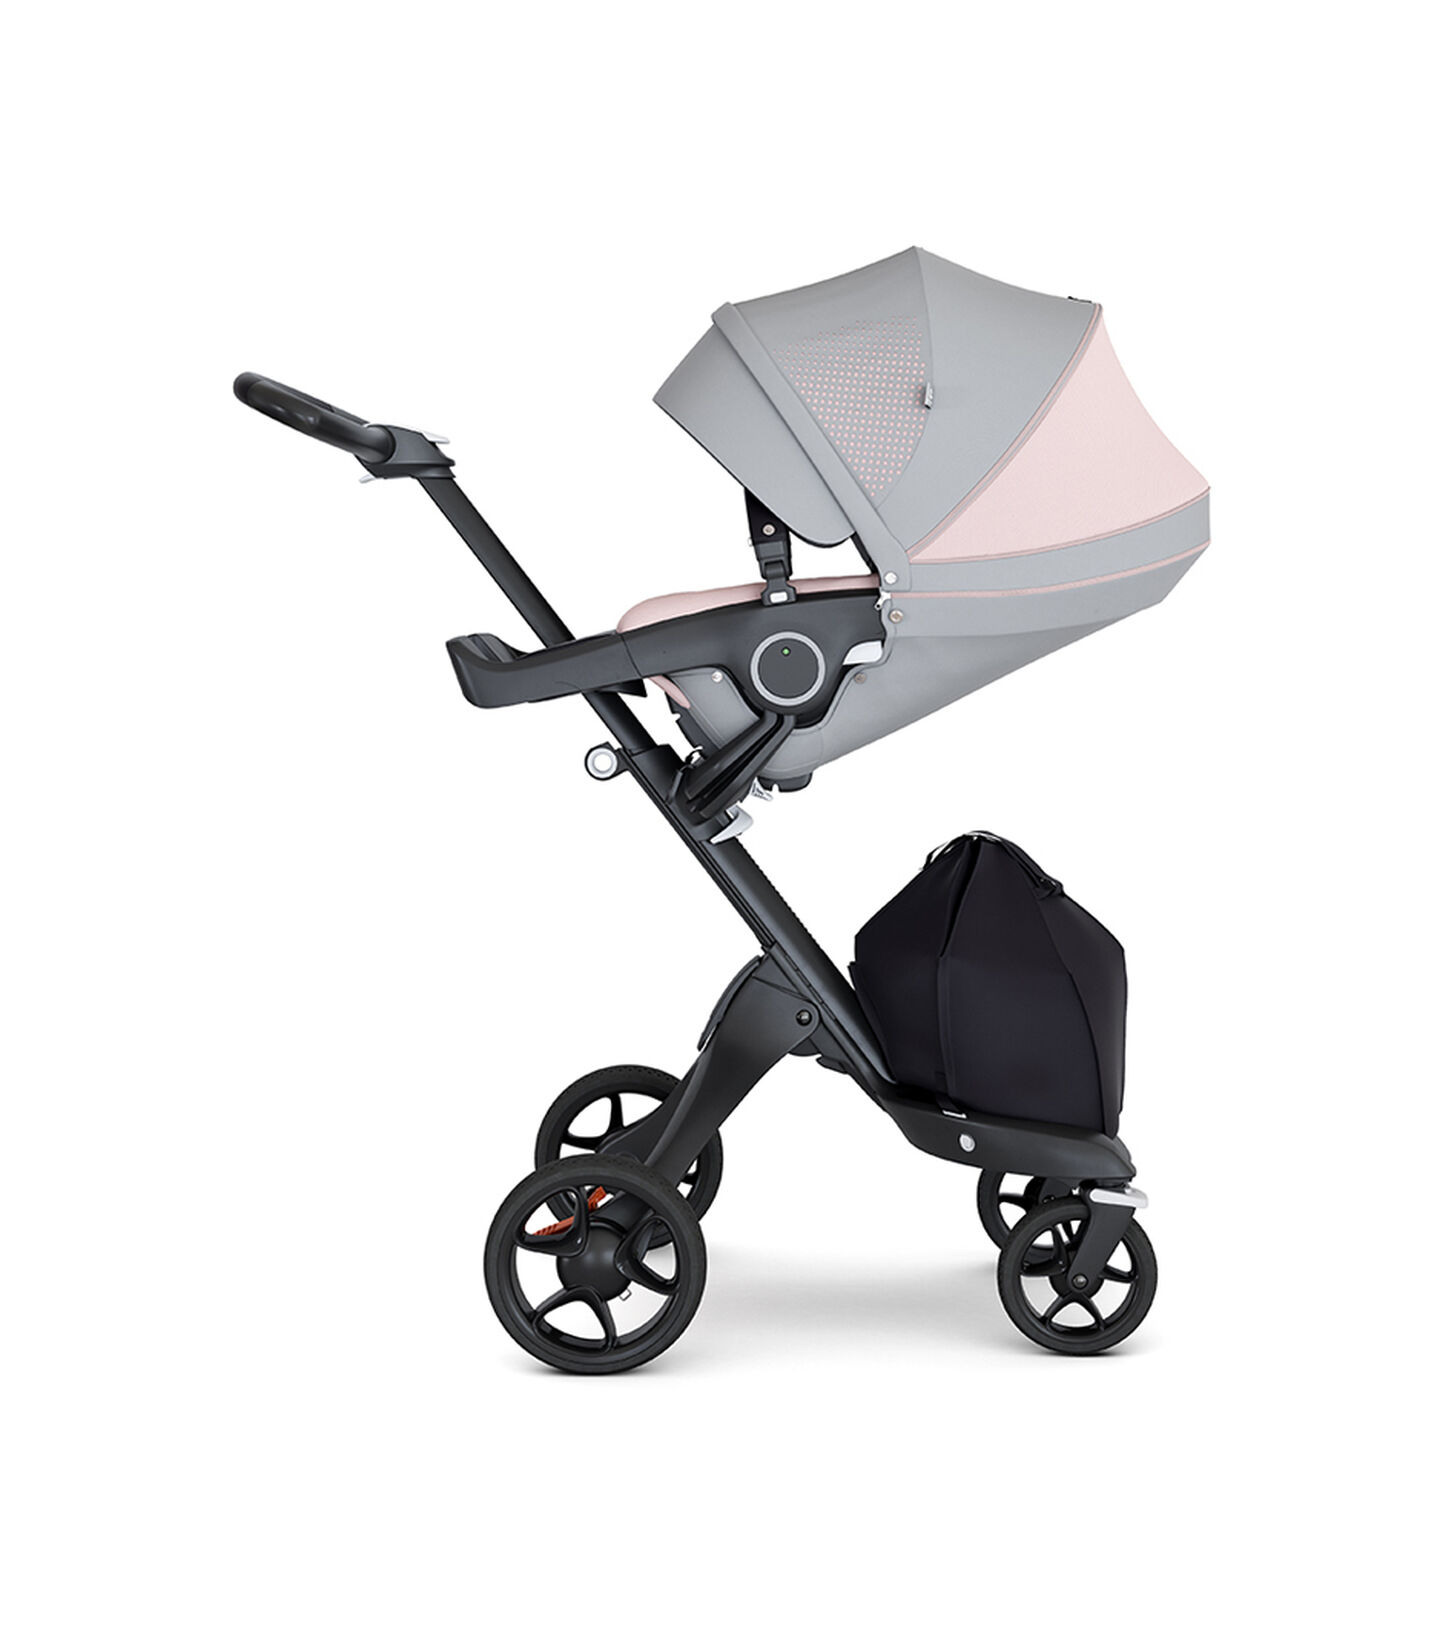 Stokke® Xplory® with Black Chassis and Leatherette Black handle. Stokke® Stroller Seat Athleisure Pink with extended canopy.